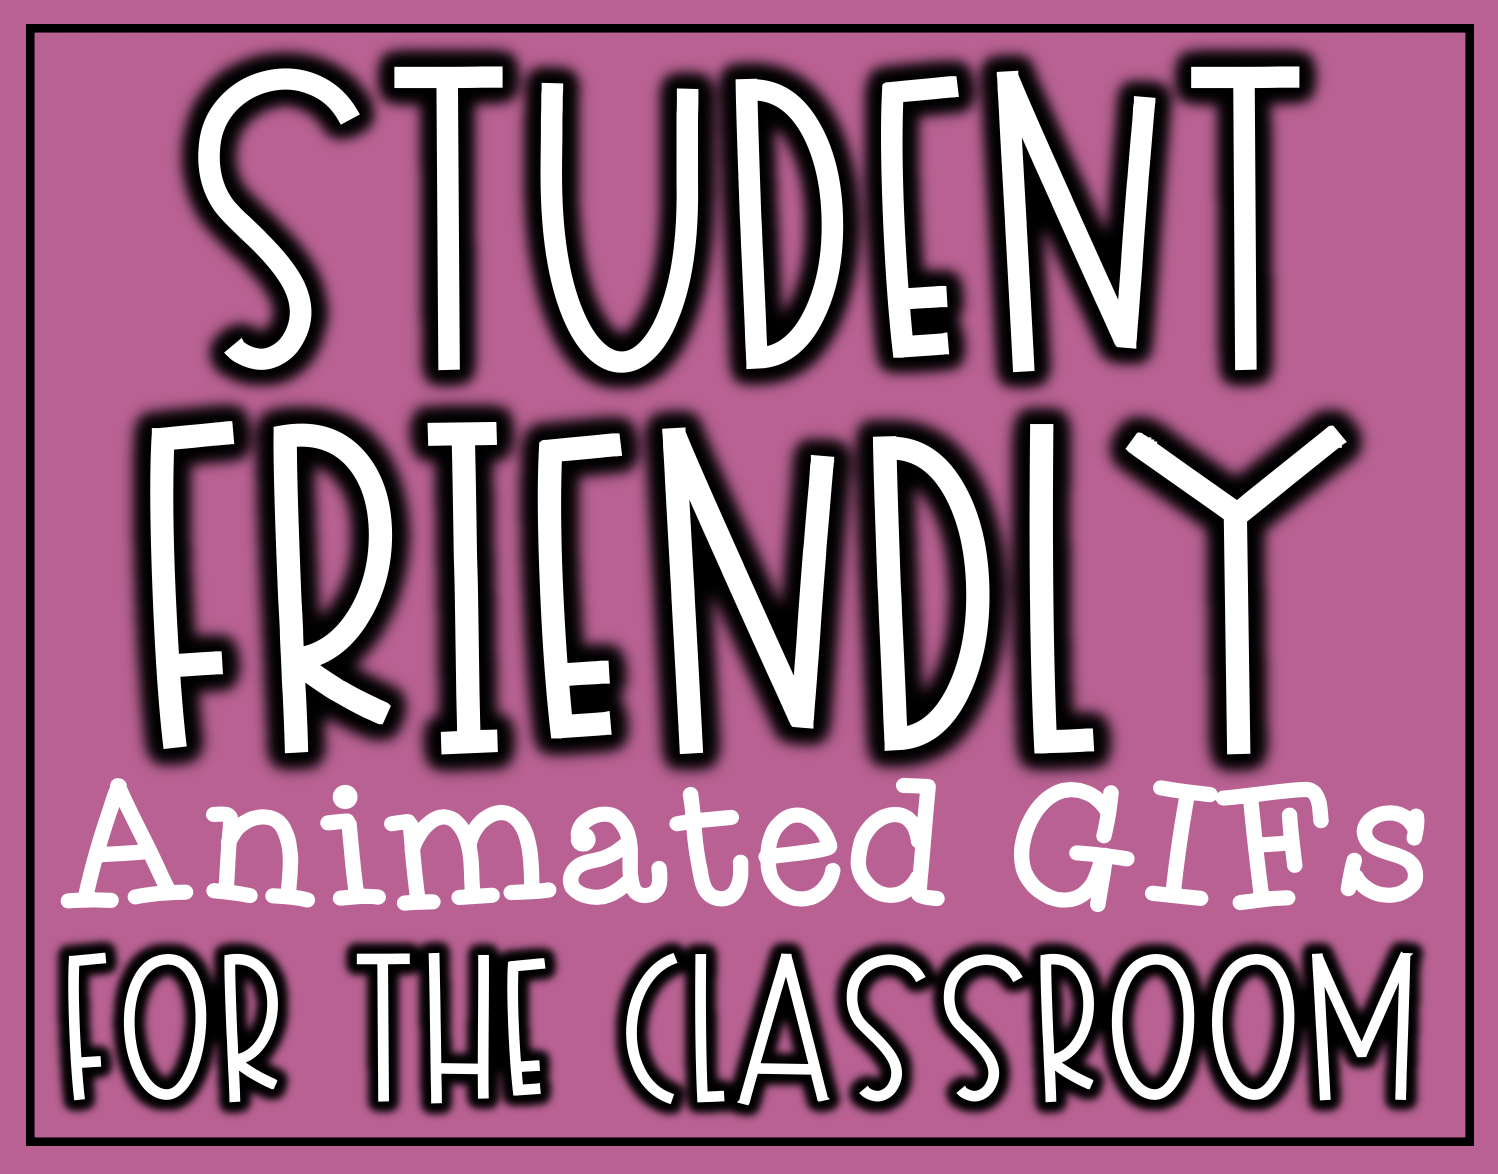 Student Friendly Animated Gifs for the Classroom